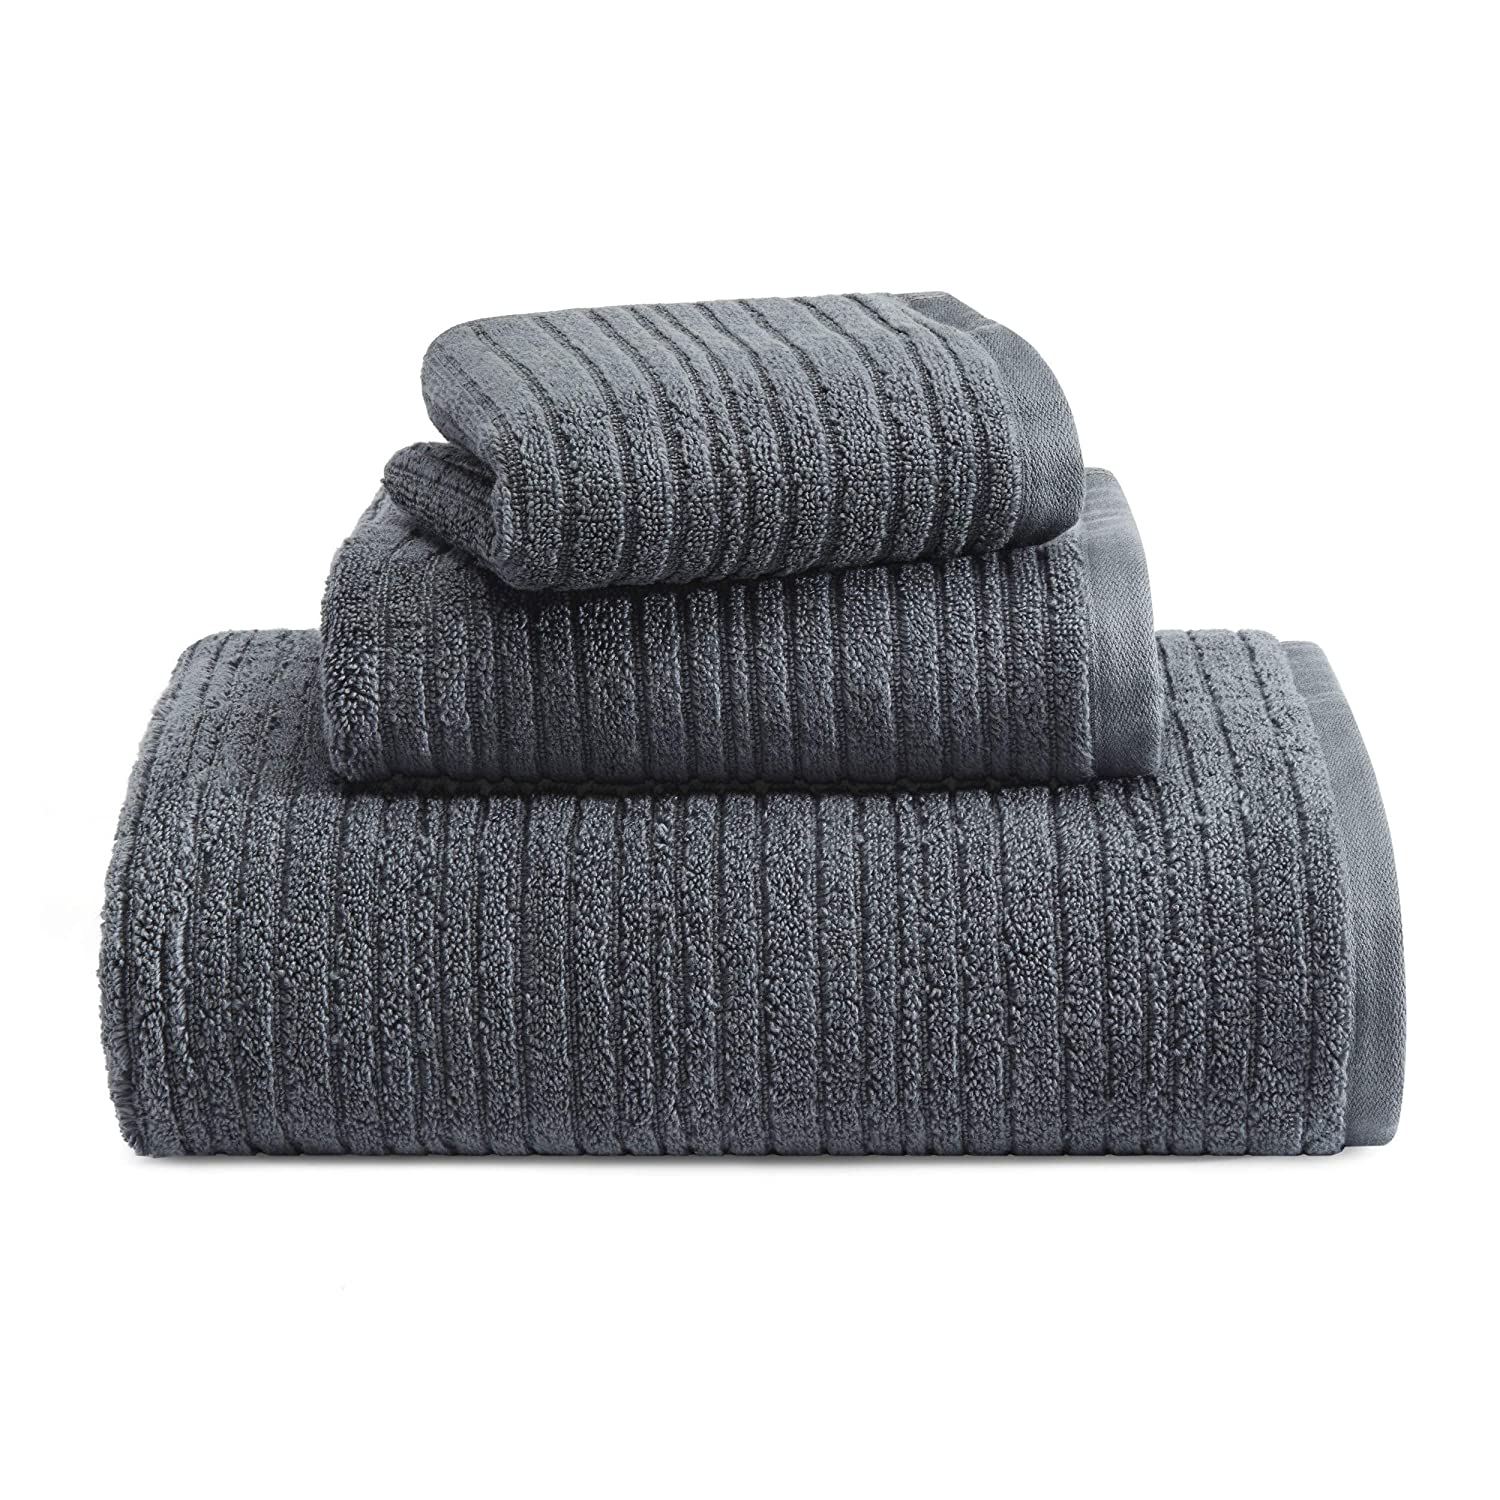 Kenneth Cole REACTION Quick Dry Towel Set, 3 Piece, Charcoal